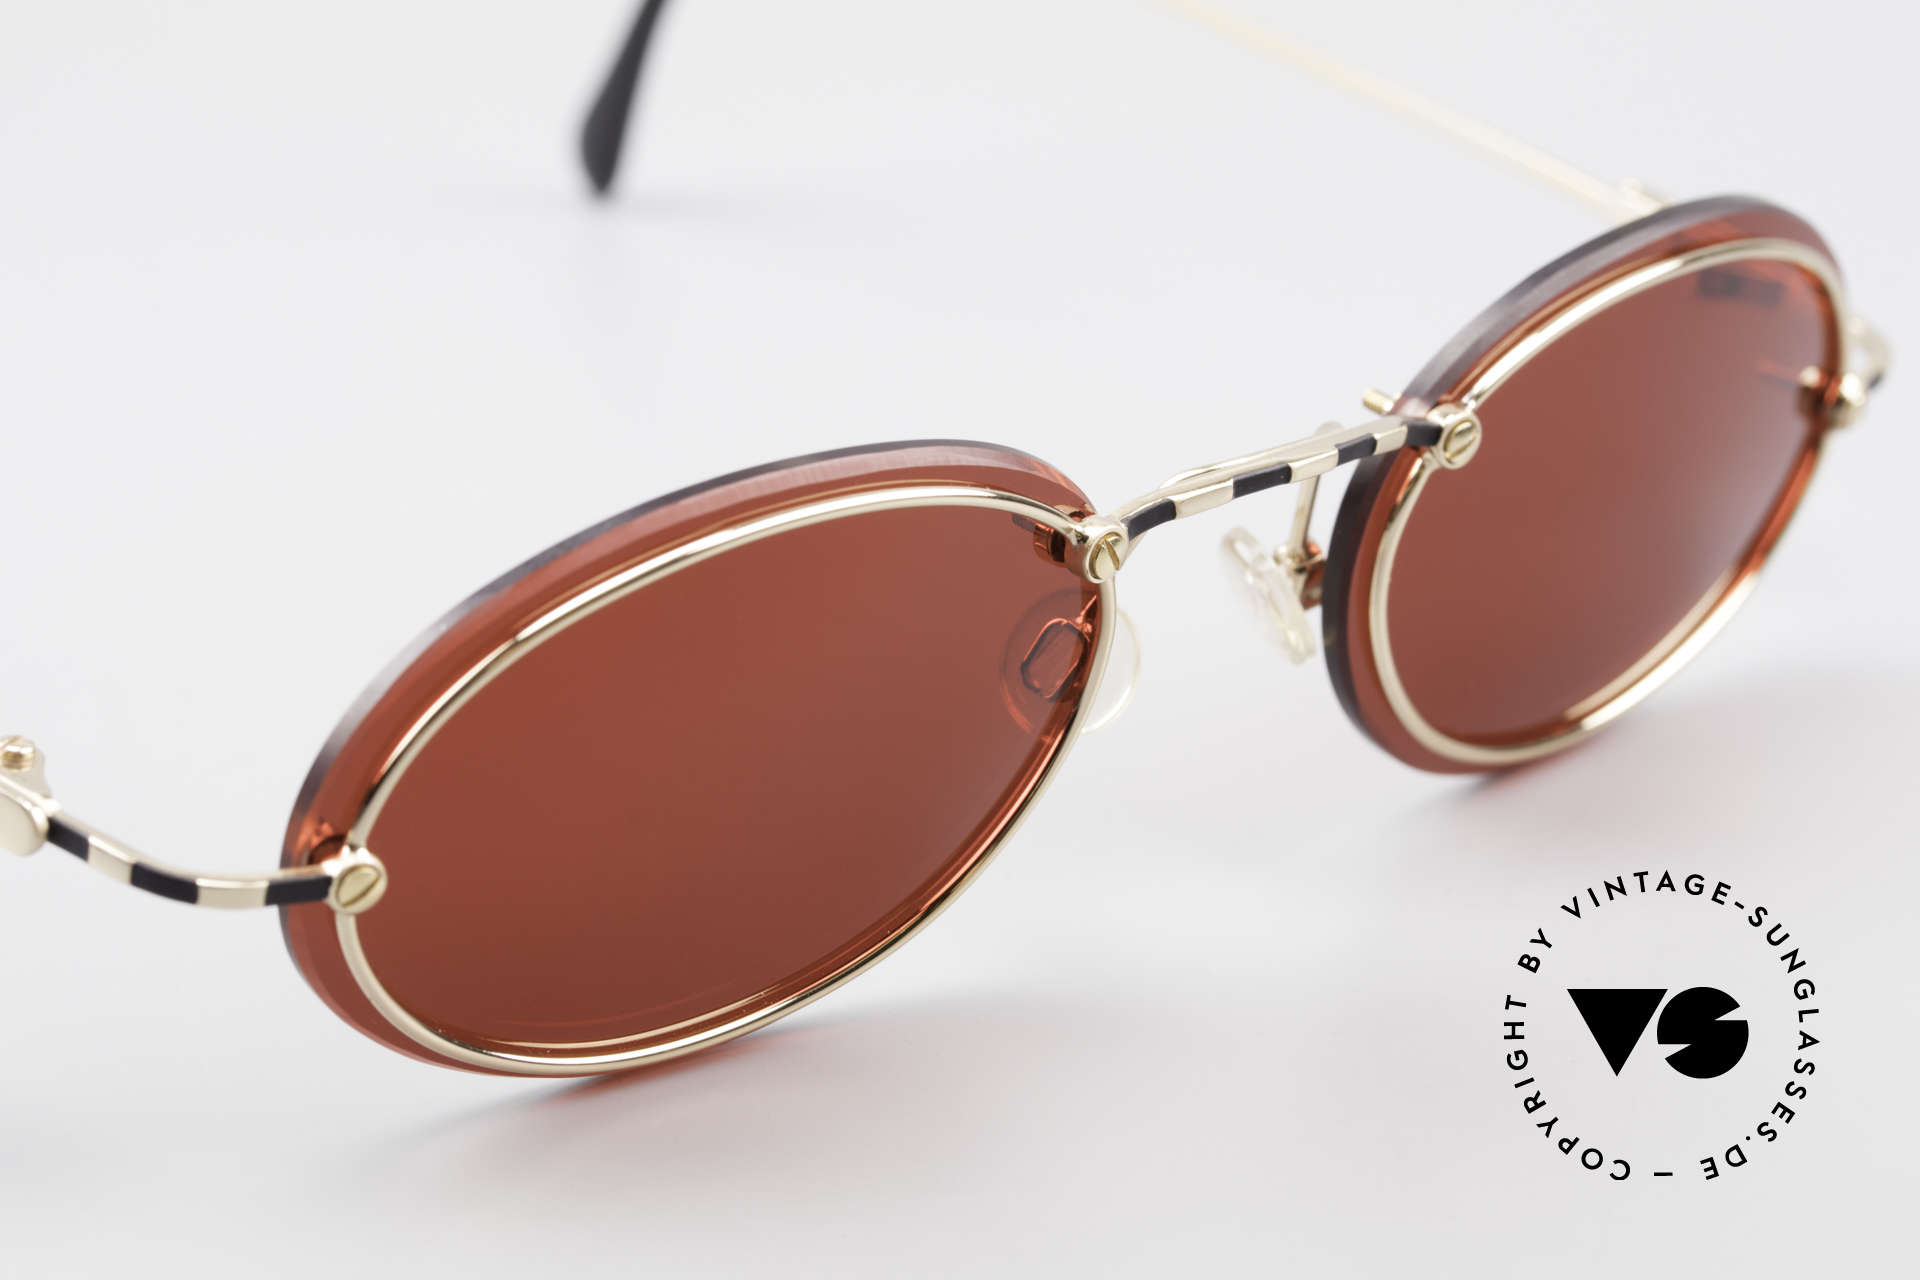 Cazal 770 90's Vintage Sunglasses Oval, NO RETRO glasses, but a rare old 1990's ORIGINAL, Made for Men and Women